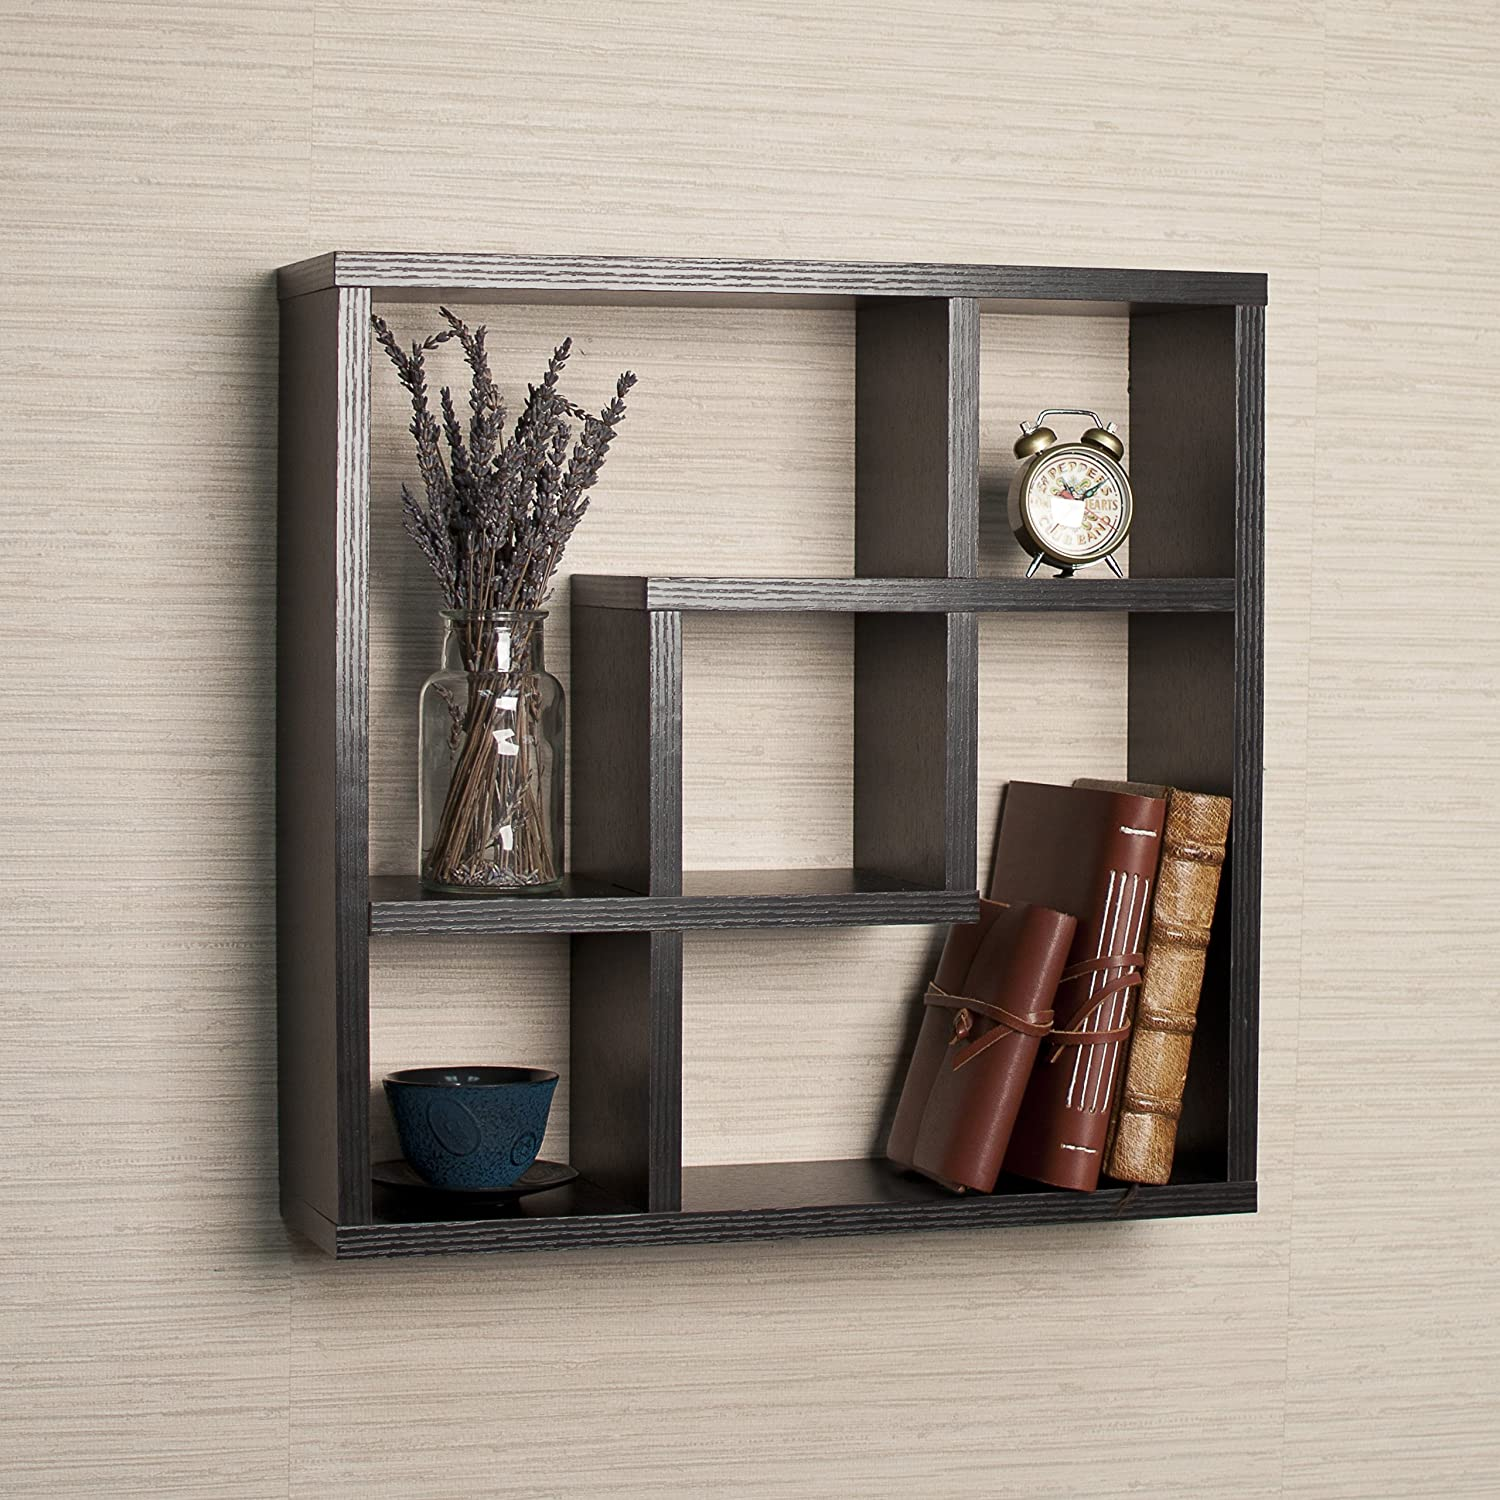 Amazon.com: Geometric Square Wall Shelf With 5 Openings: Home U0026 Kitchen